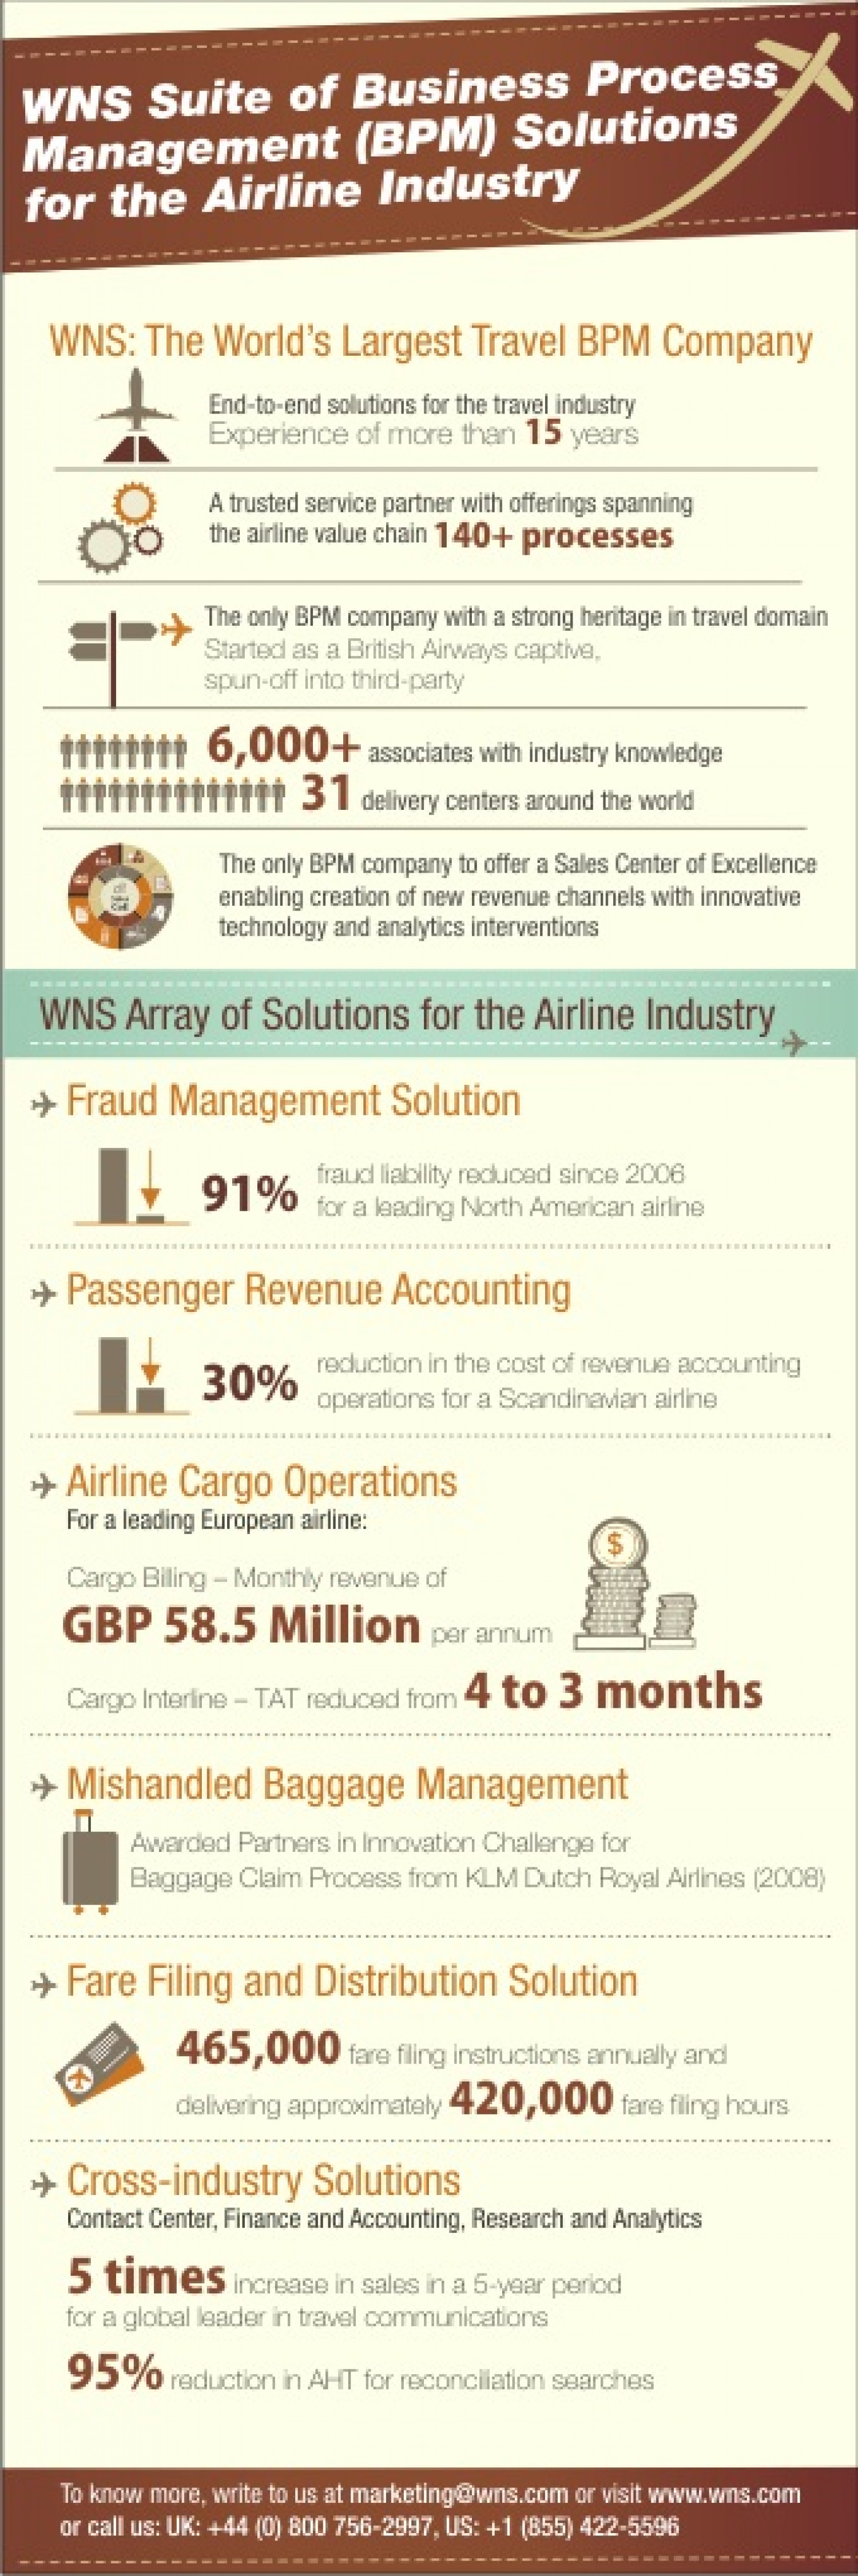 BPM Solutions for the Airline Industry Infographic